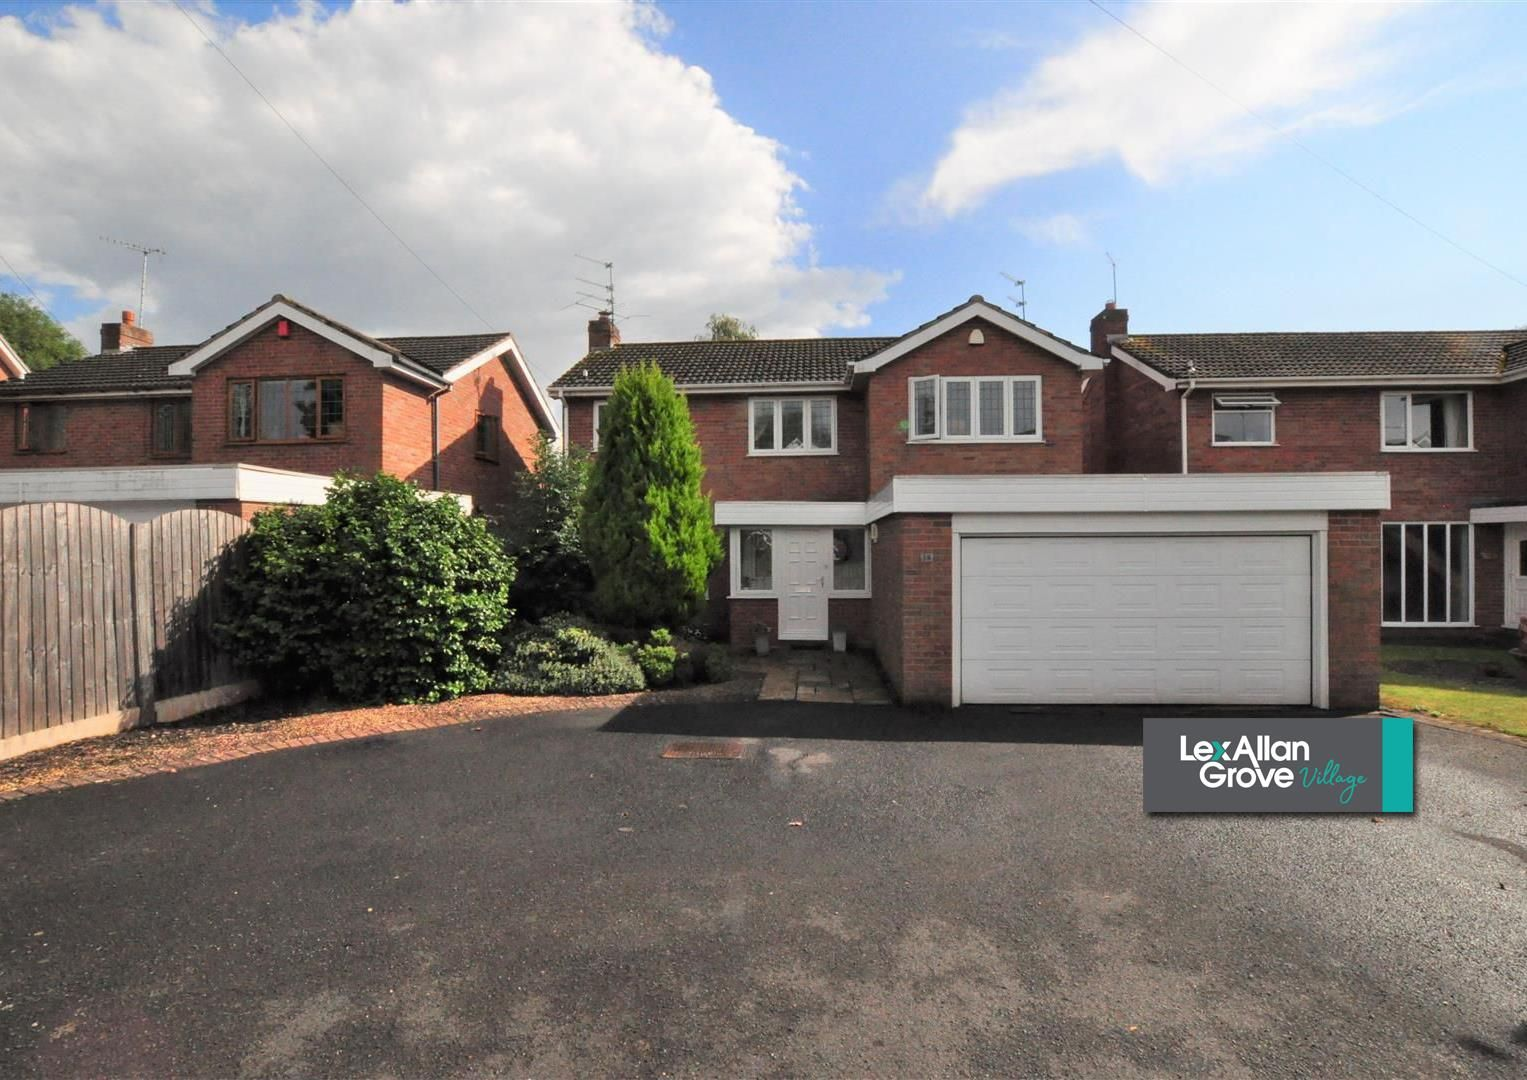 4 bed house for sale in Hagley  - Property Image 29